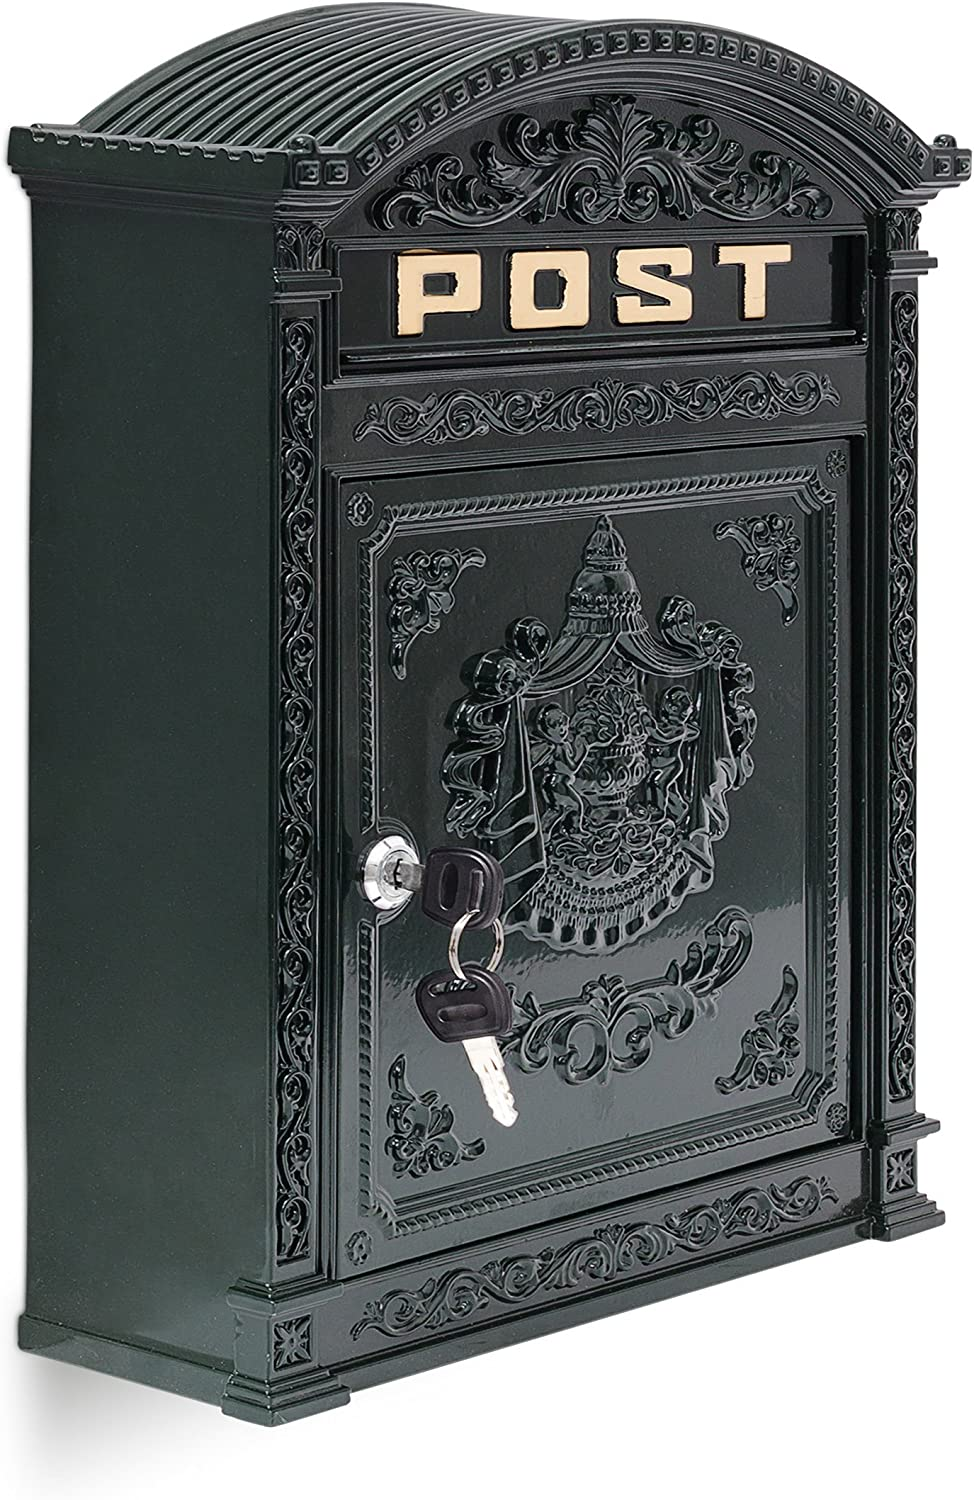 with Roof 44.5 x 31 x 9.5 cm Cast Aluminum for DIN A4 Letters Bronze Relaxdays Antique Letterbox English-Style Wall-Mount Mailbox